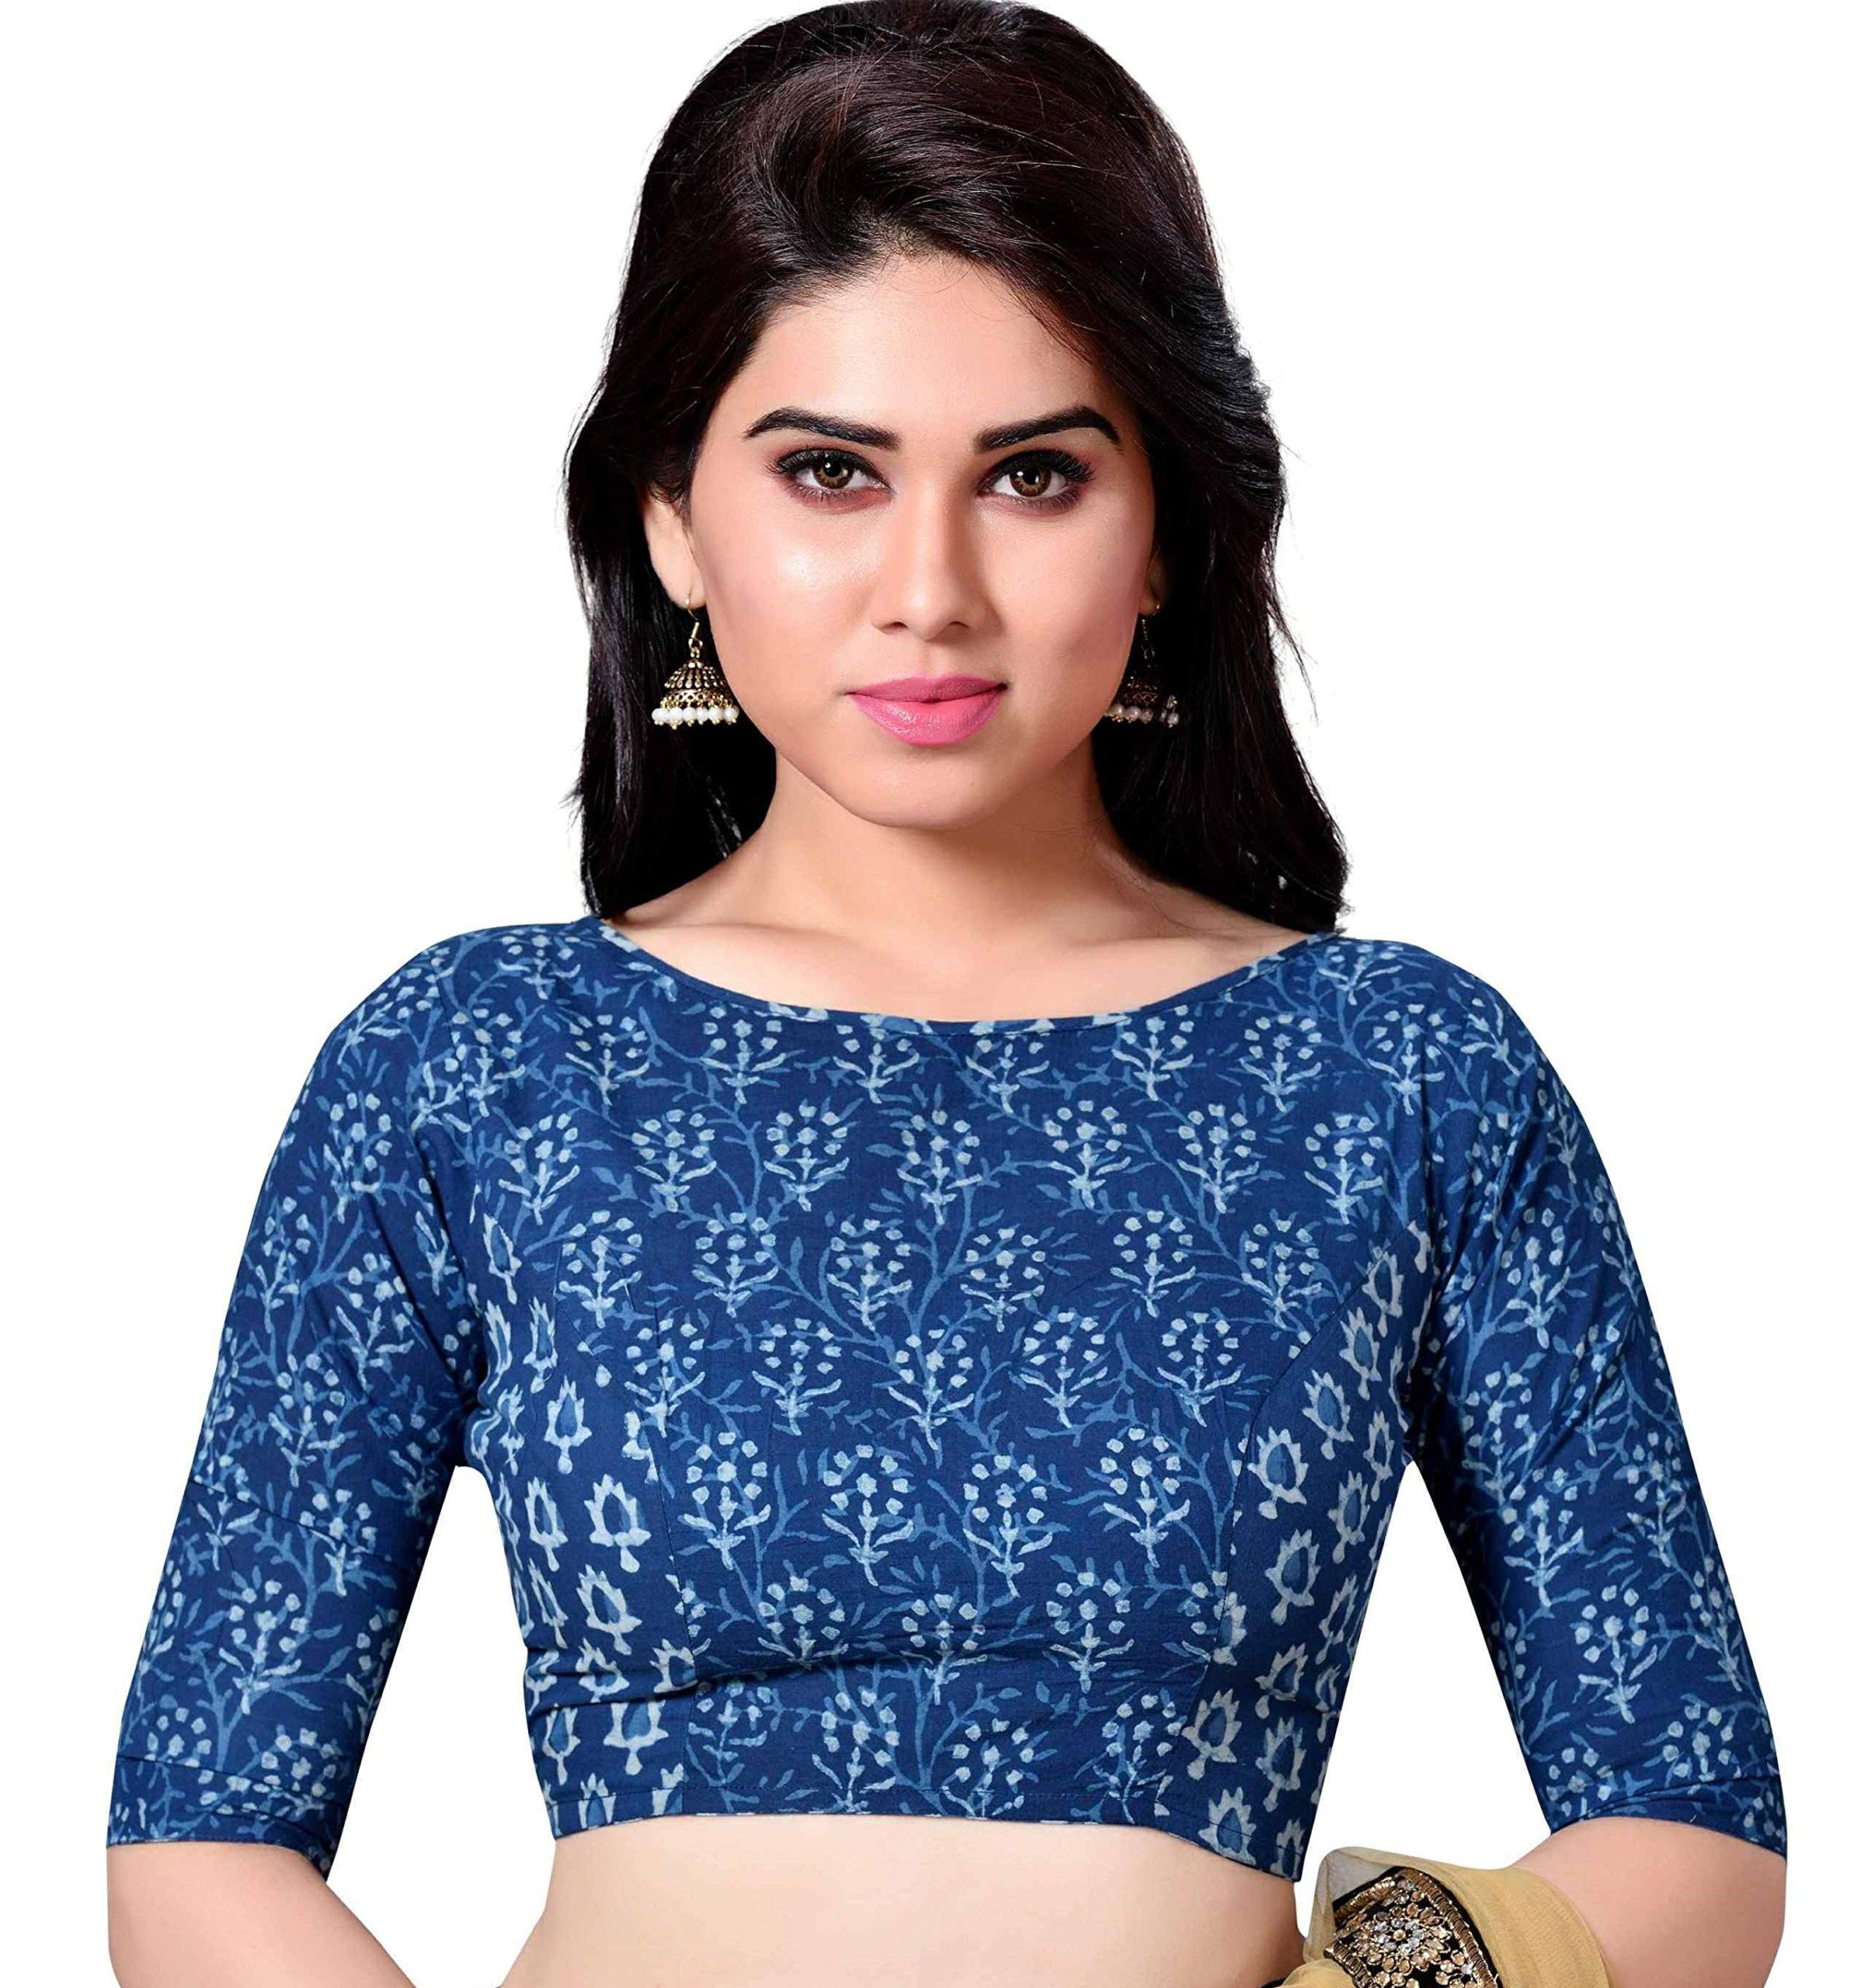 b077345a54e036 Best Rated in Women's Saree Blouses & Helpful Customer Reviews ...